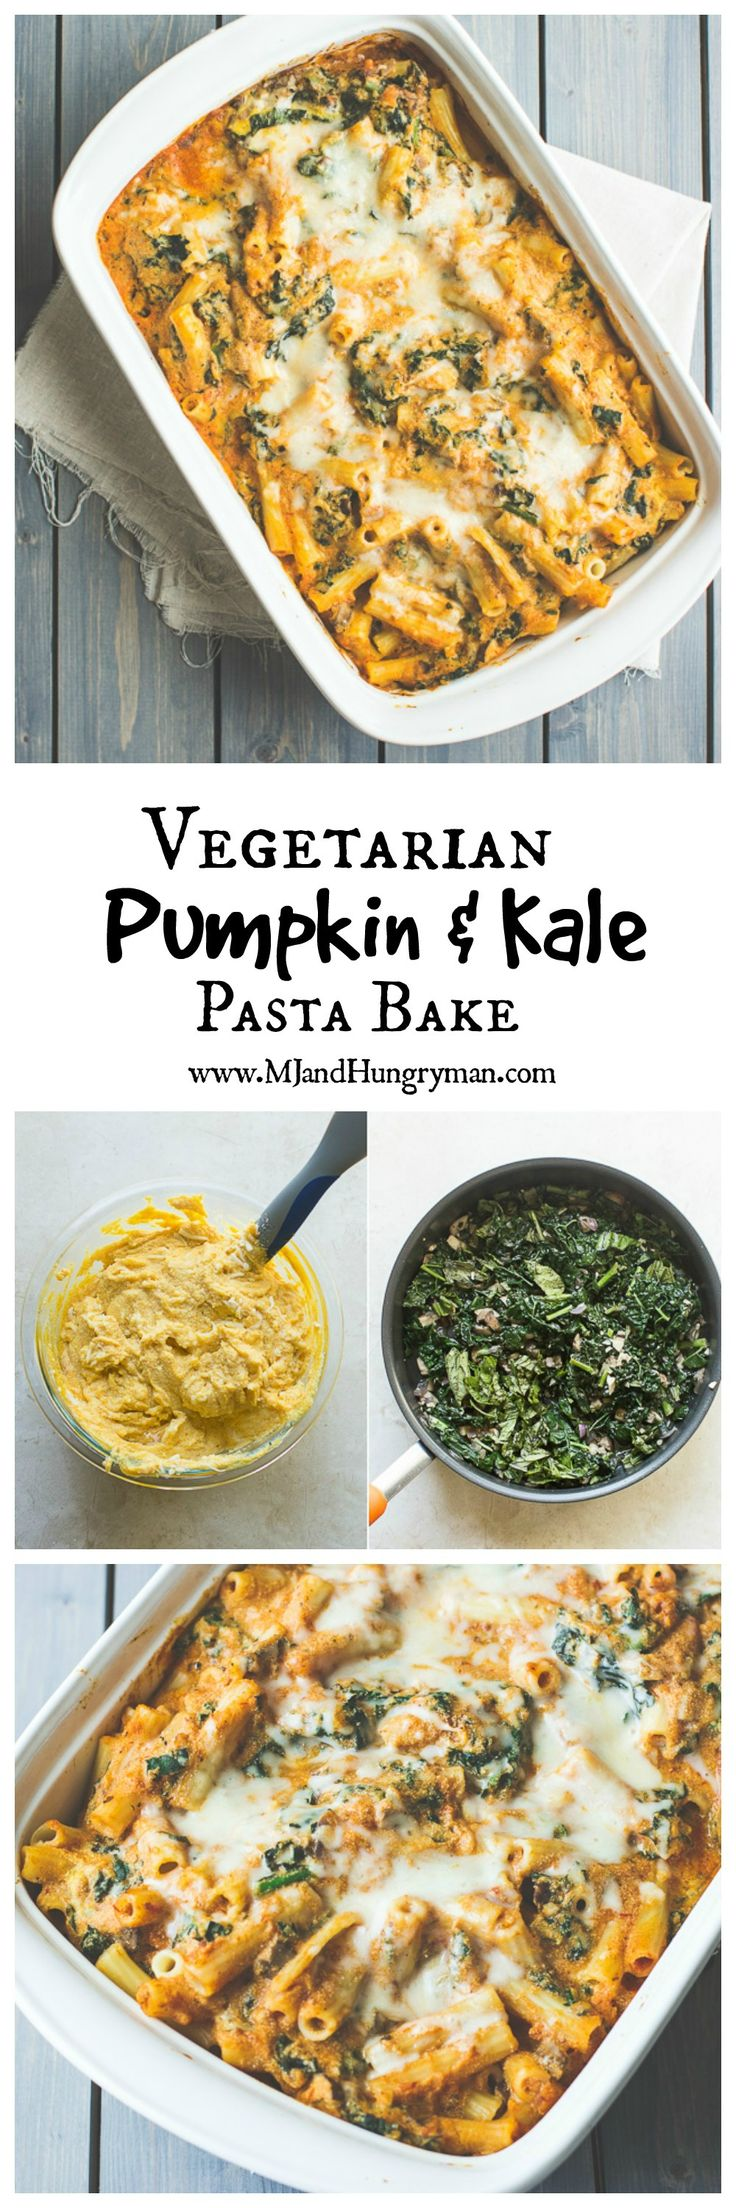 Vegetarian pumpkin and kale pasta bake